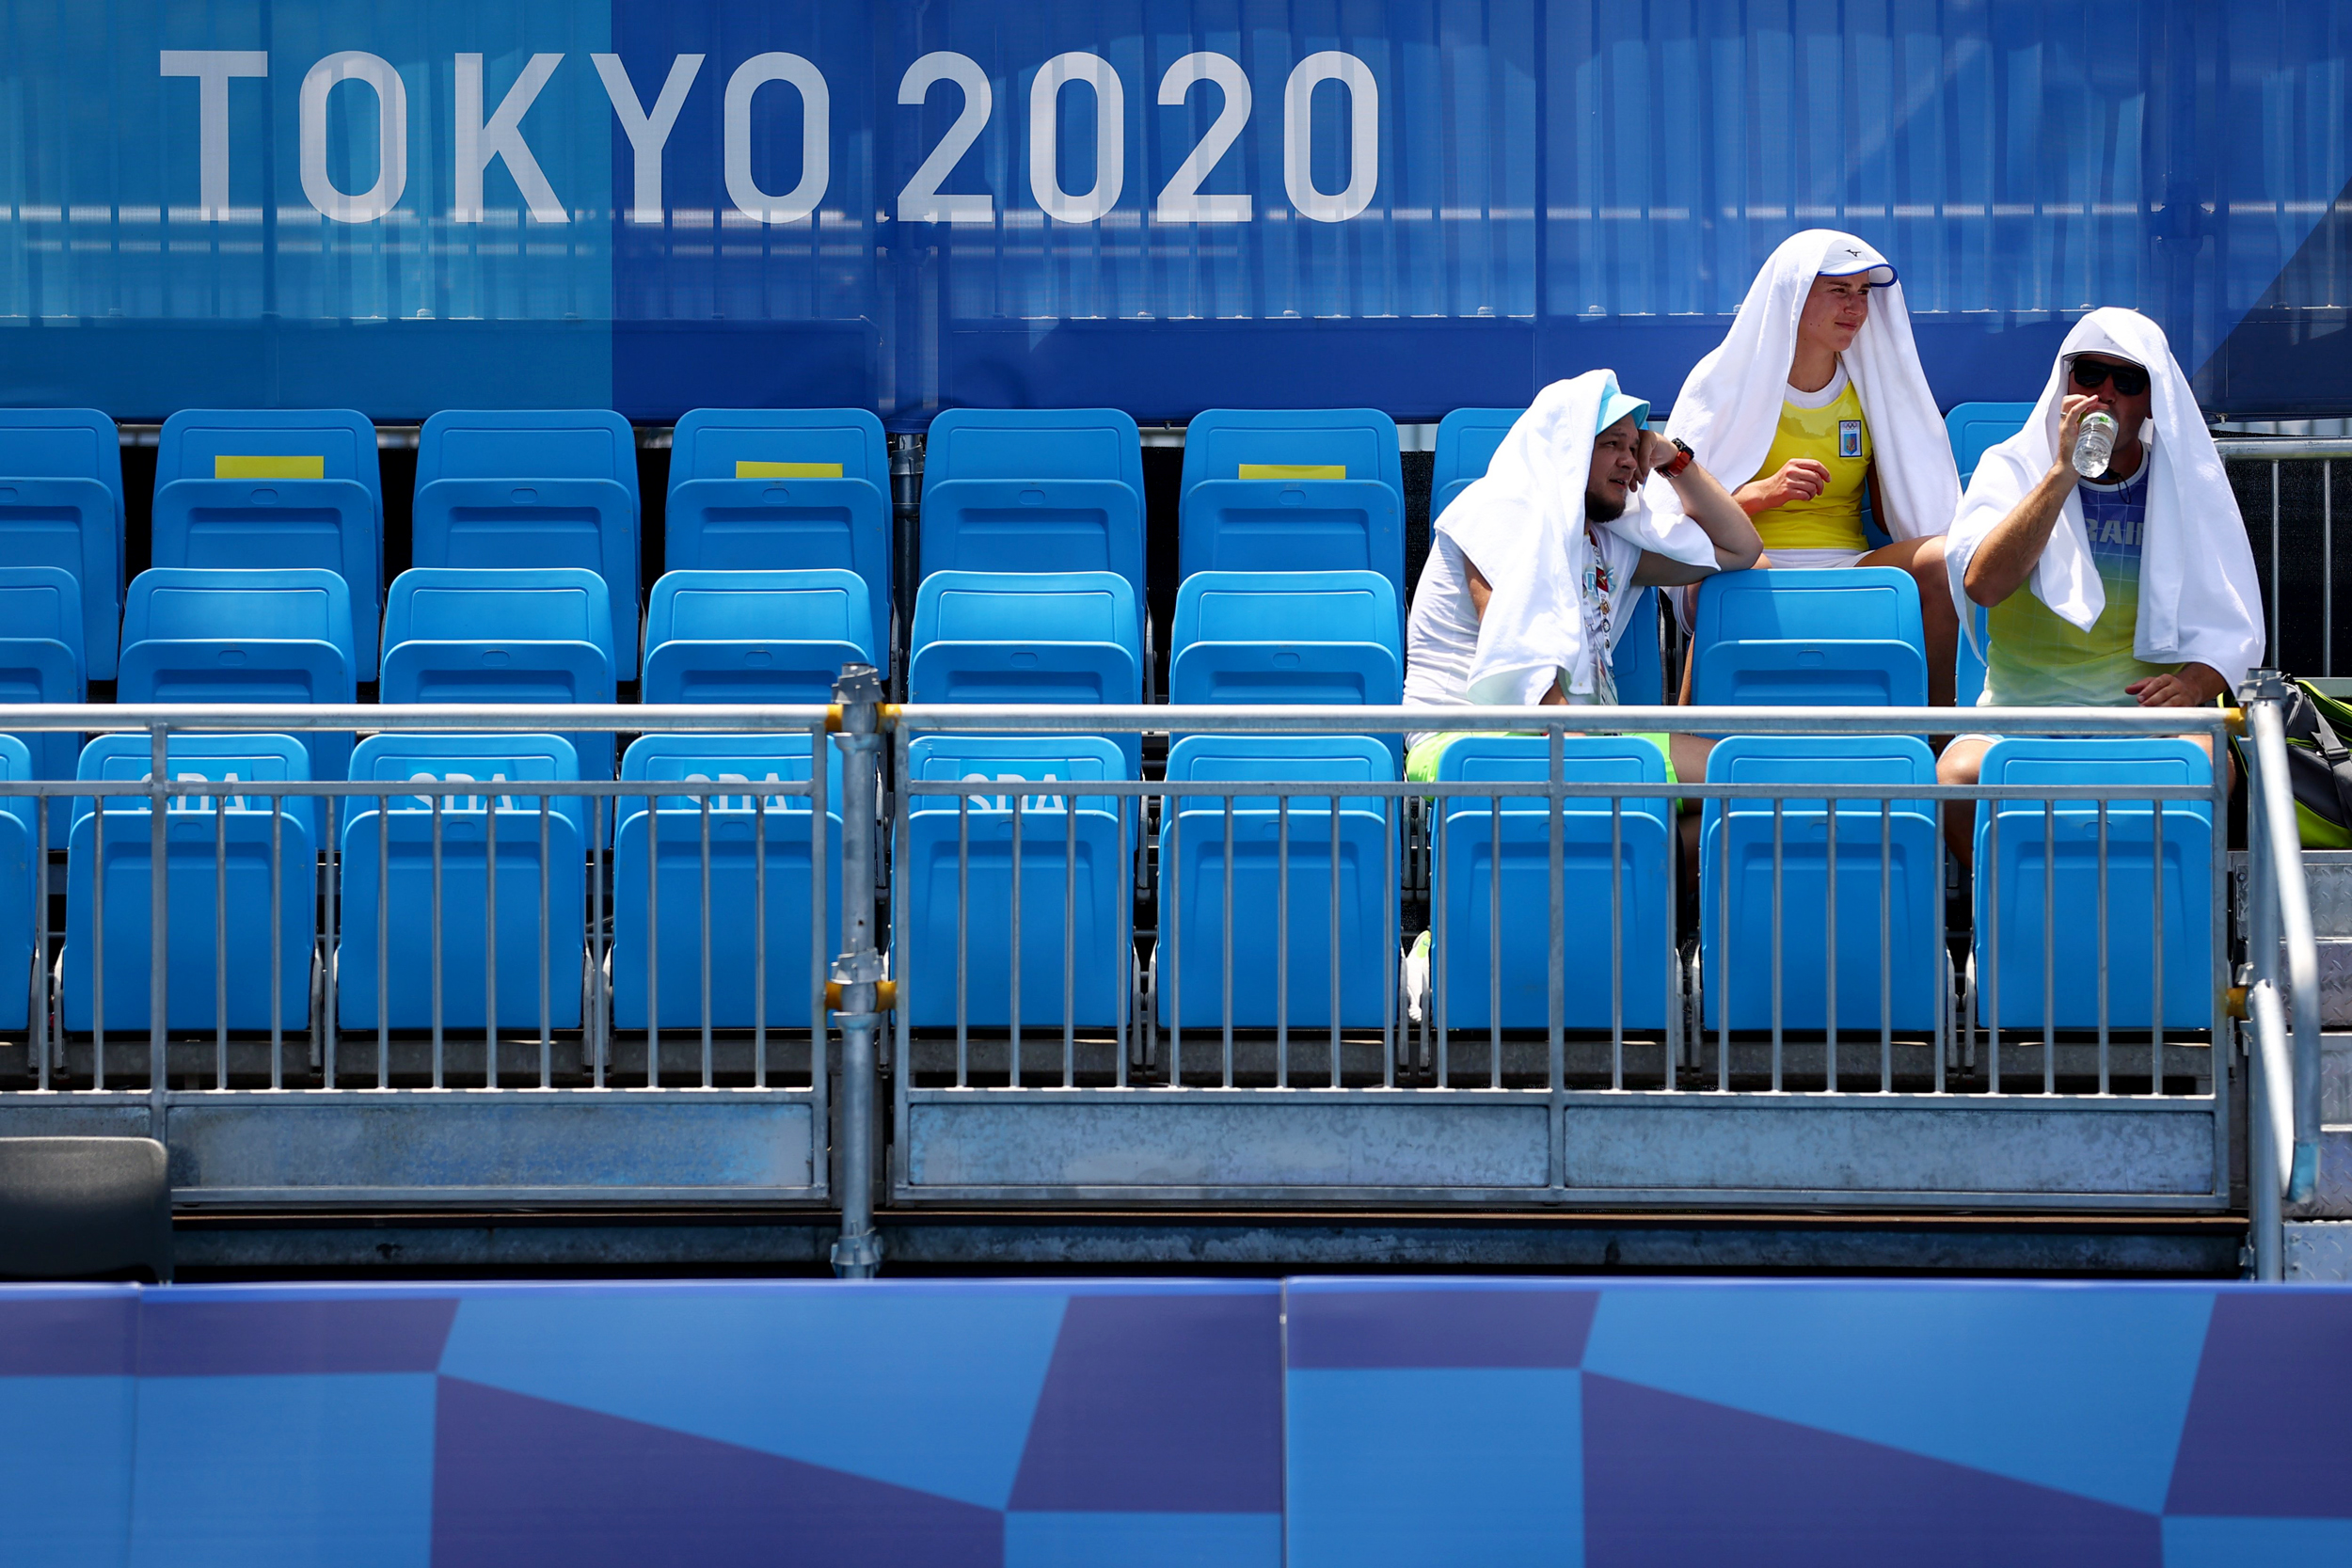 Olympic organizers are now contending with two major obstacles: Covid and a heat wave